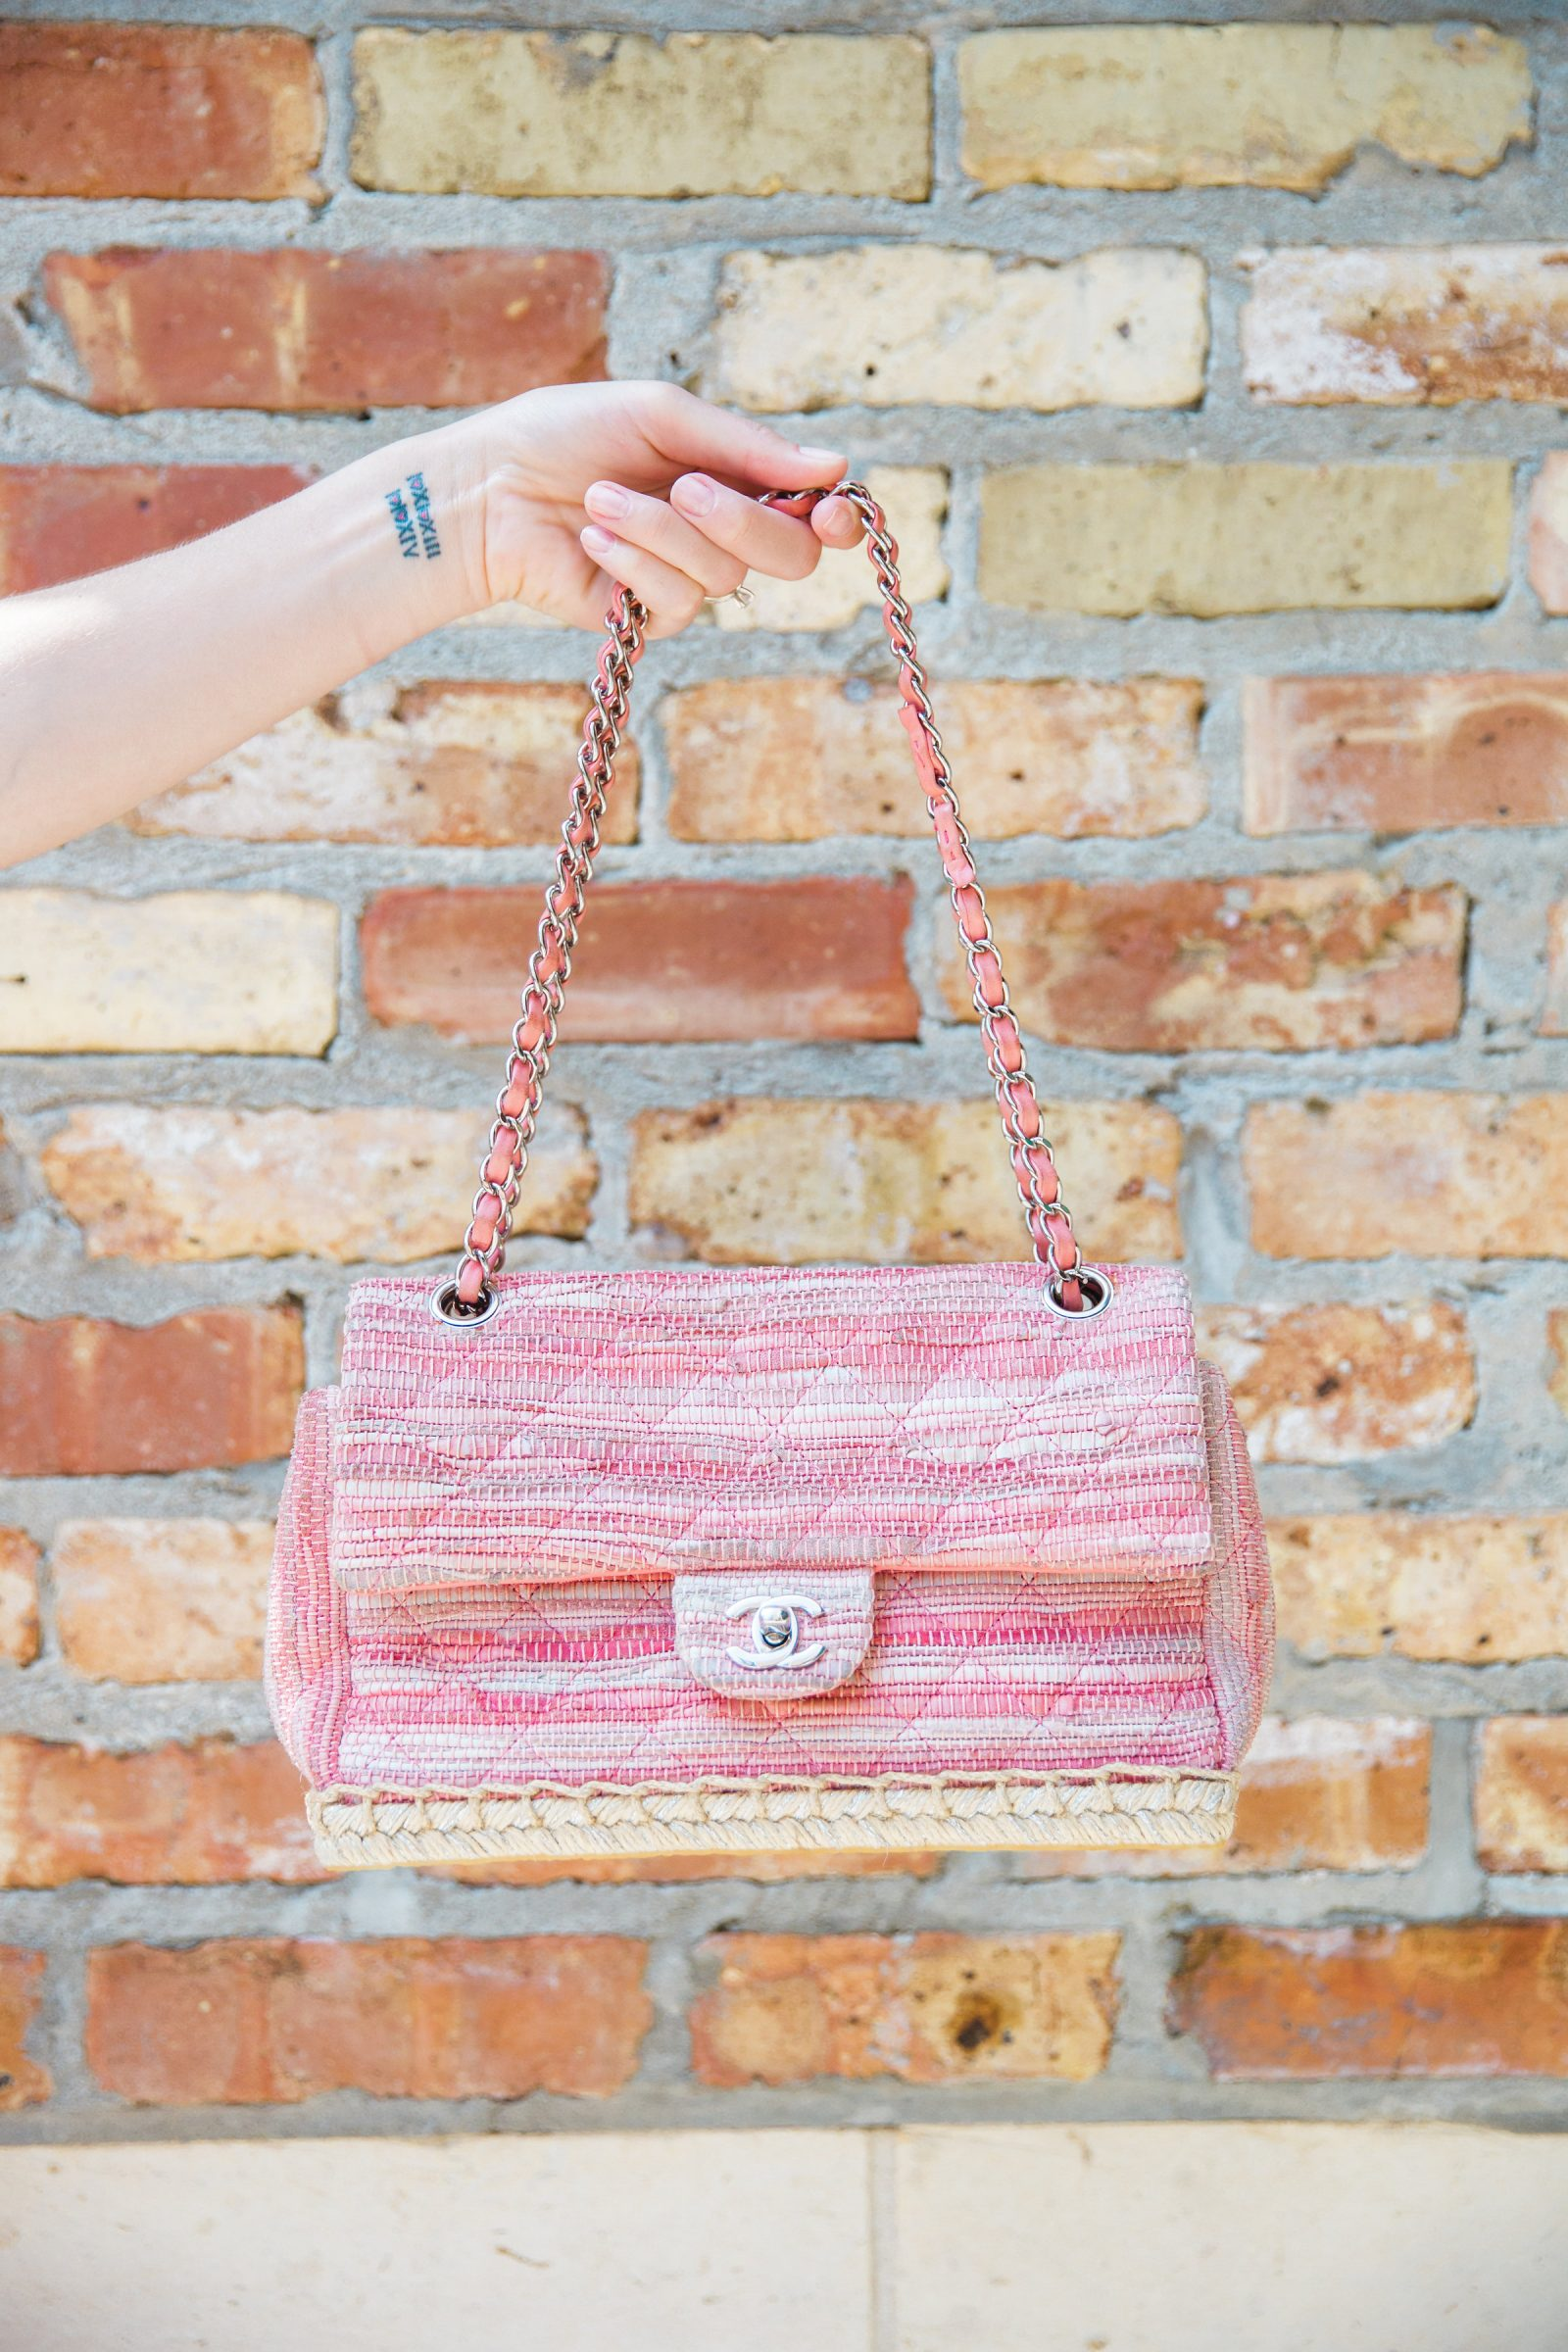 Houston fashion blogger Uptown with Elly Brown wears a vintage Chanel bag